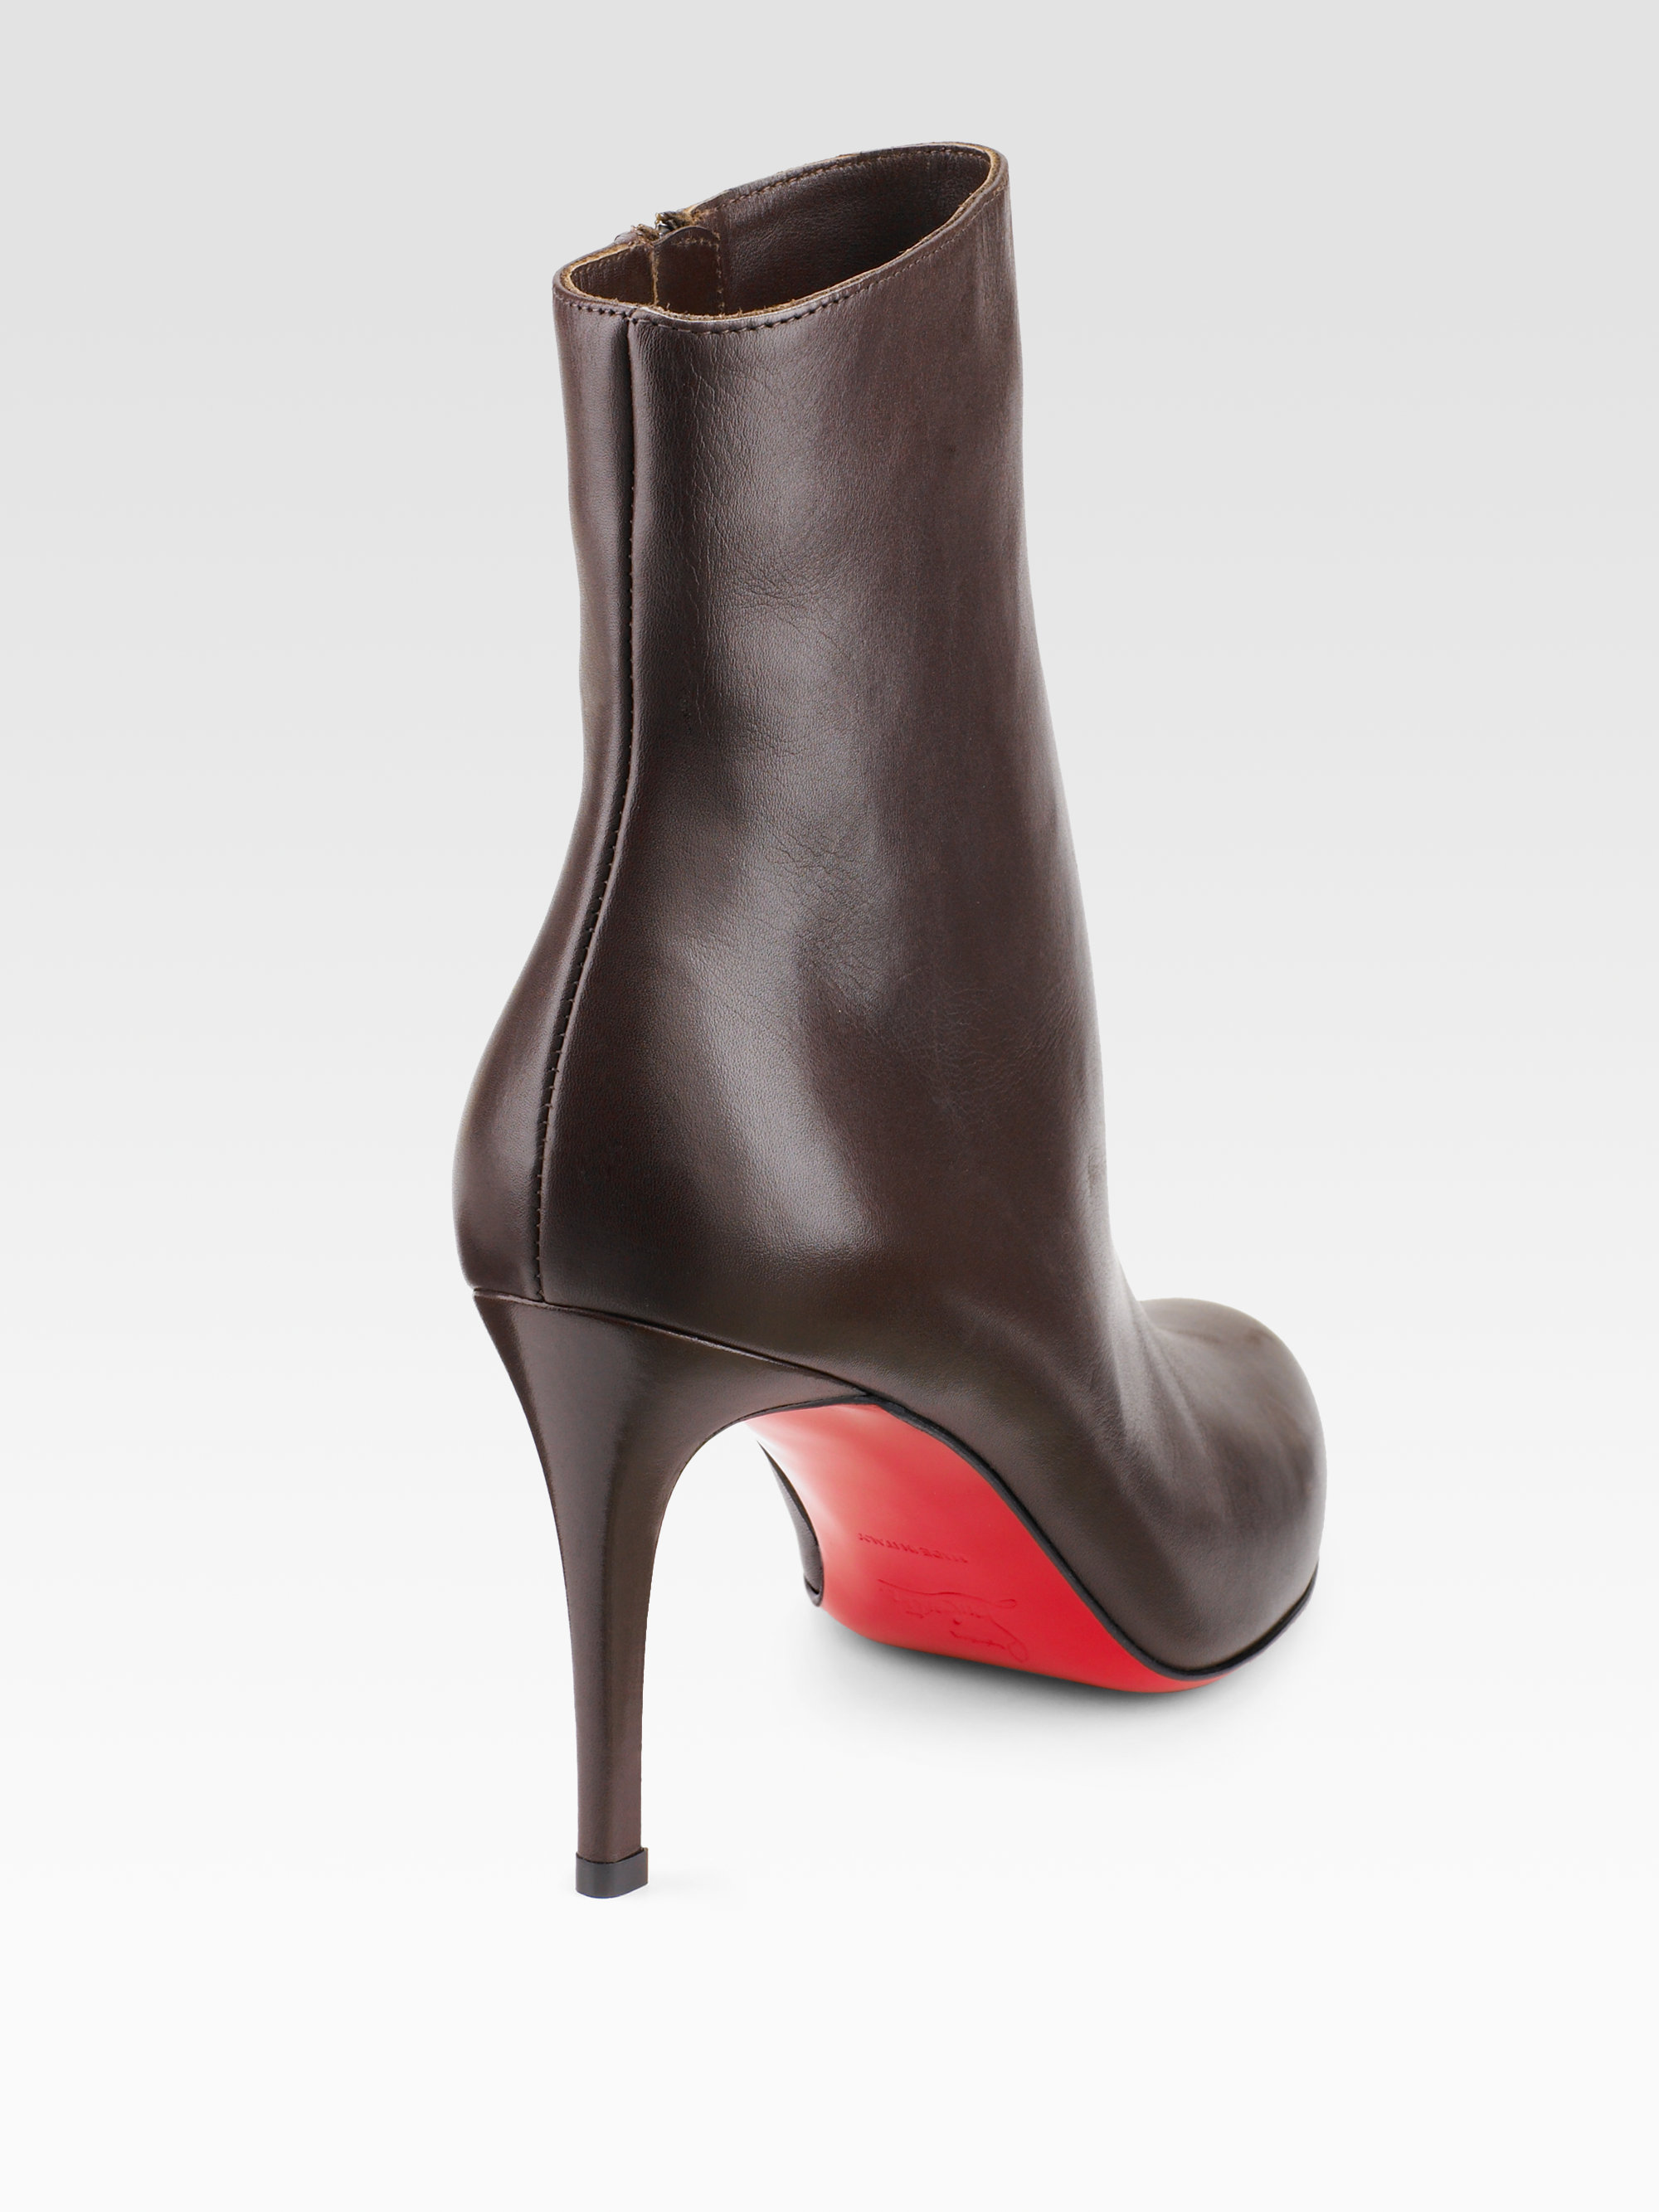 christian louboutin mens sneakers for sale - christian louboutin round-toe ankle boots Brown leather   The ...